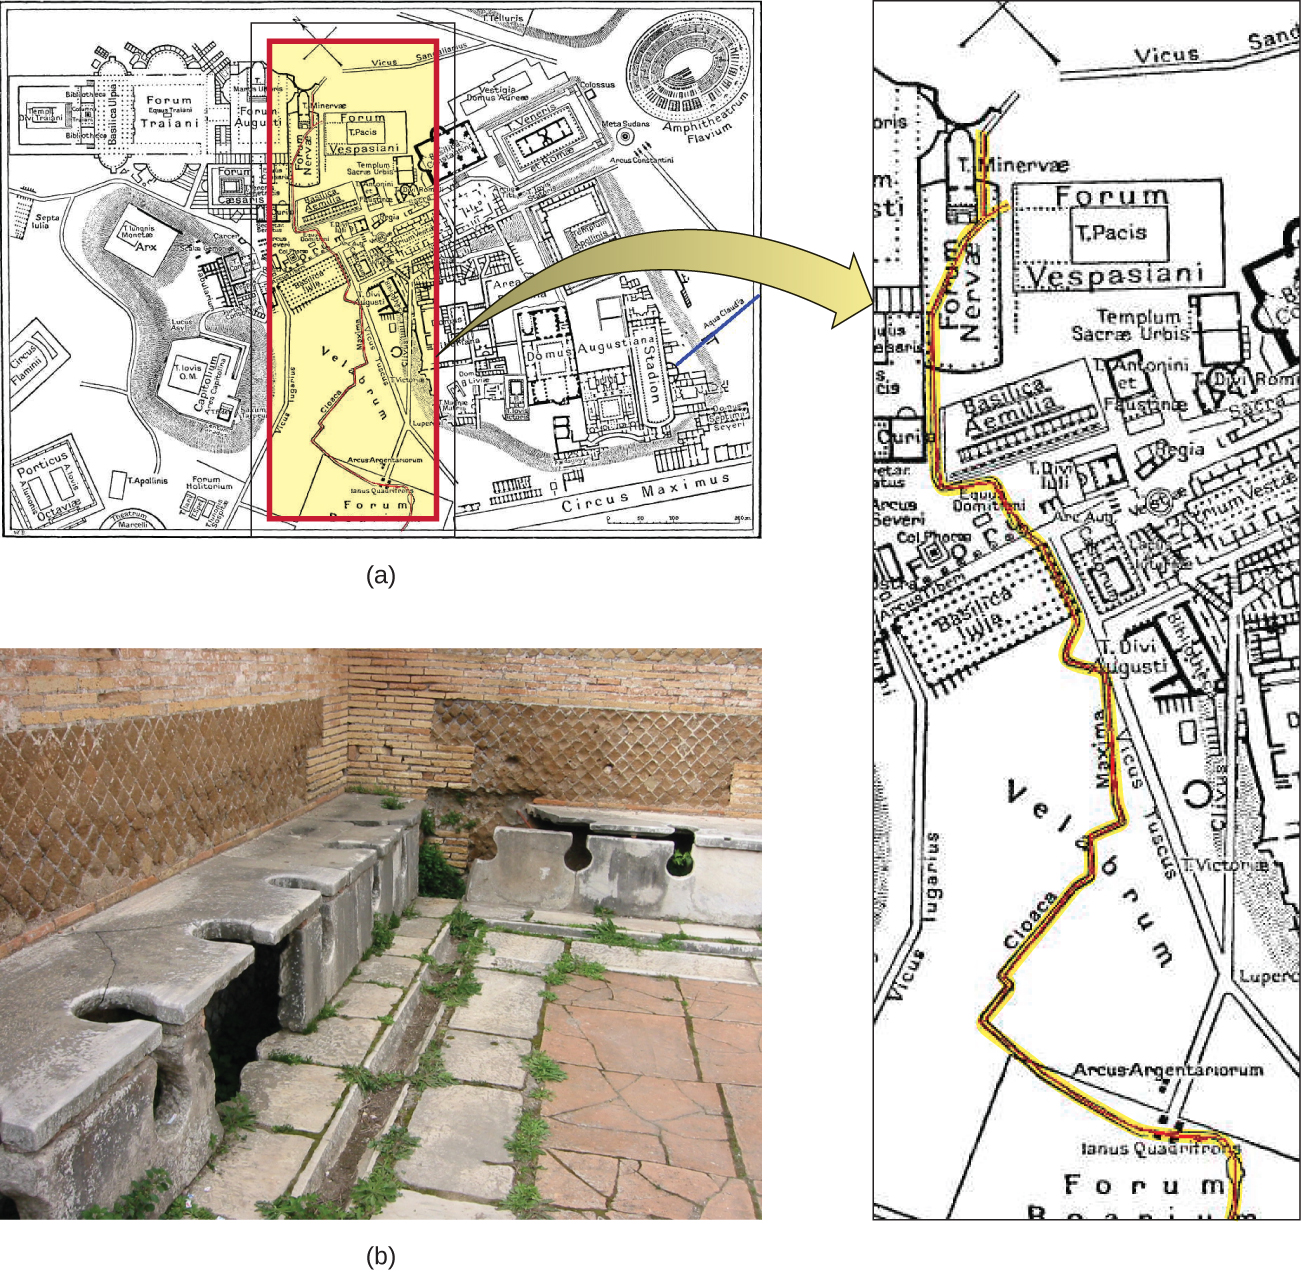 Figure a is a map of a city containing a stadium, forum, and other structures. Running through the center of the city is a red line. Figure b is a photograph of a corner of a room. There is a trough between the walls and the floor. This trough is covered with stone benches that have large holes (as for a toilet) in the bench. The holes span the top and front of the bench. There are six holes visible in the bench that runs along one side of the image and two more in the bench along the other side. The image does not show the entire room so there are likely more available spots in this room.